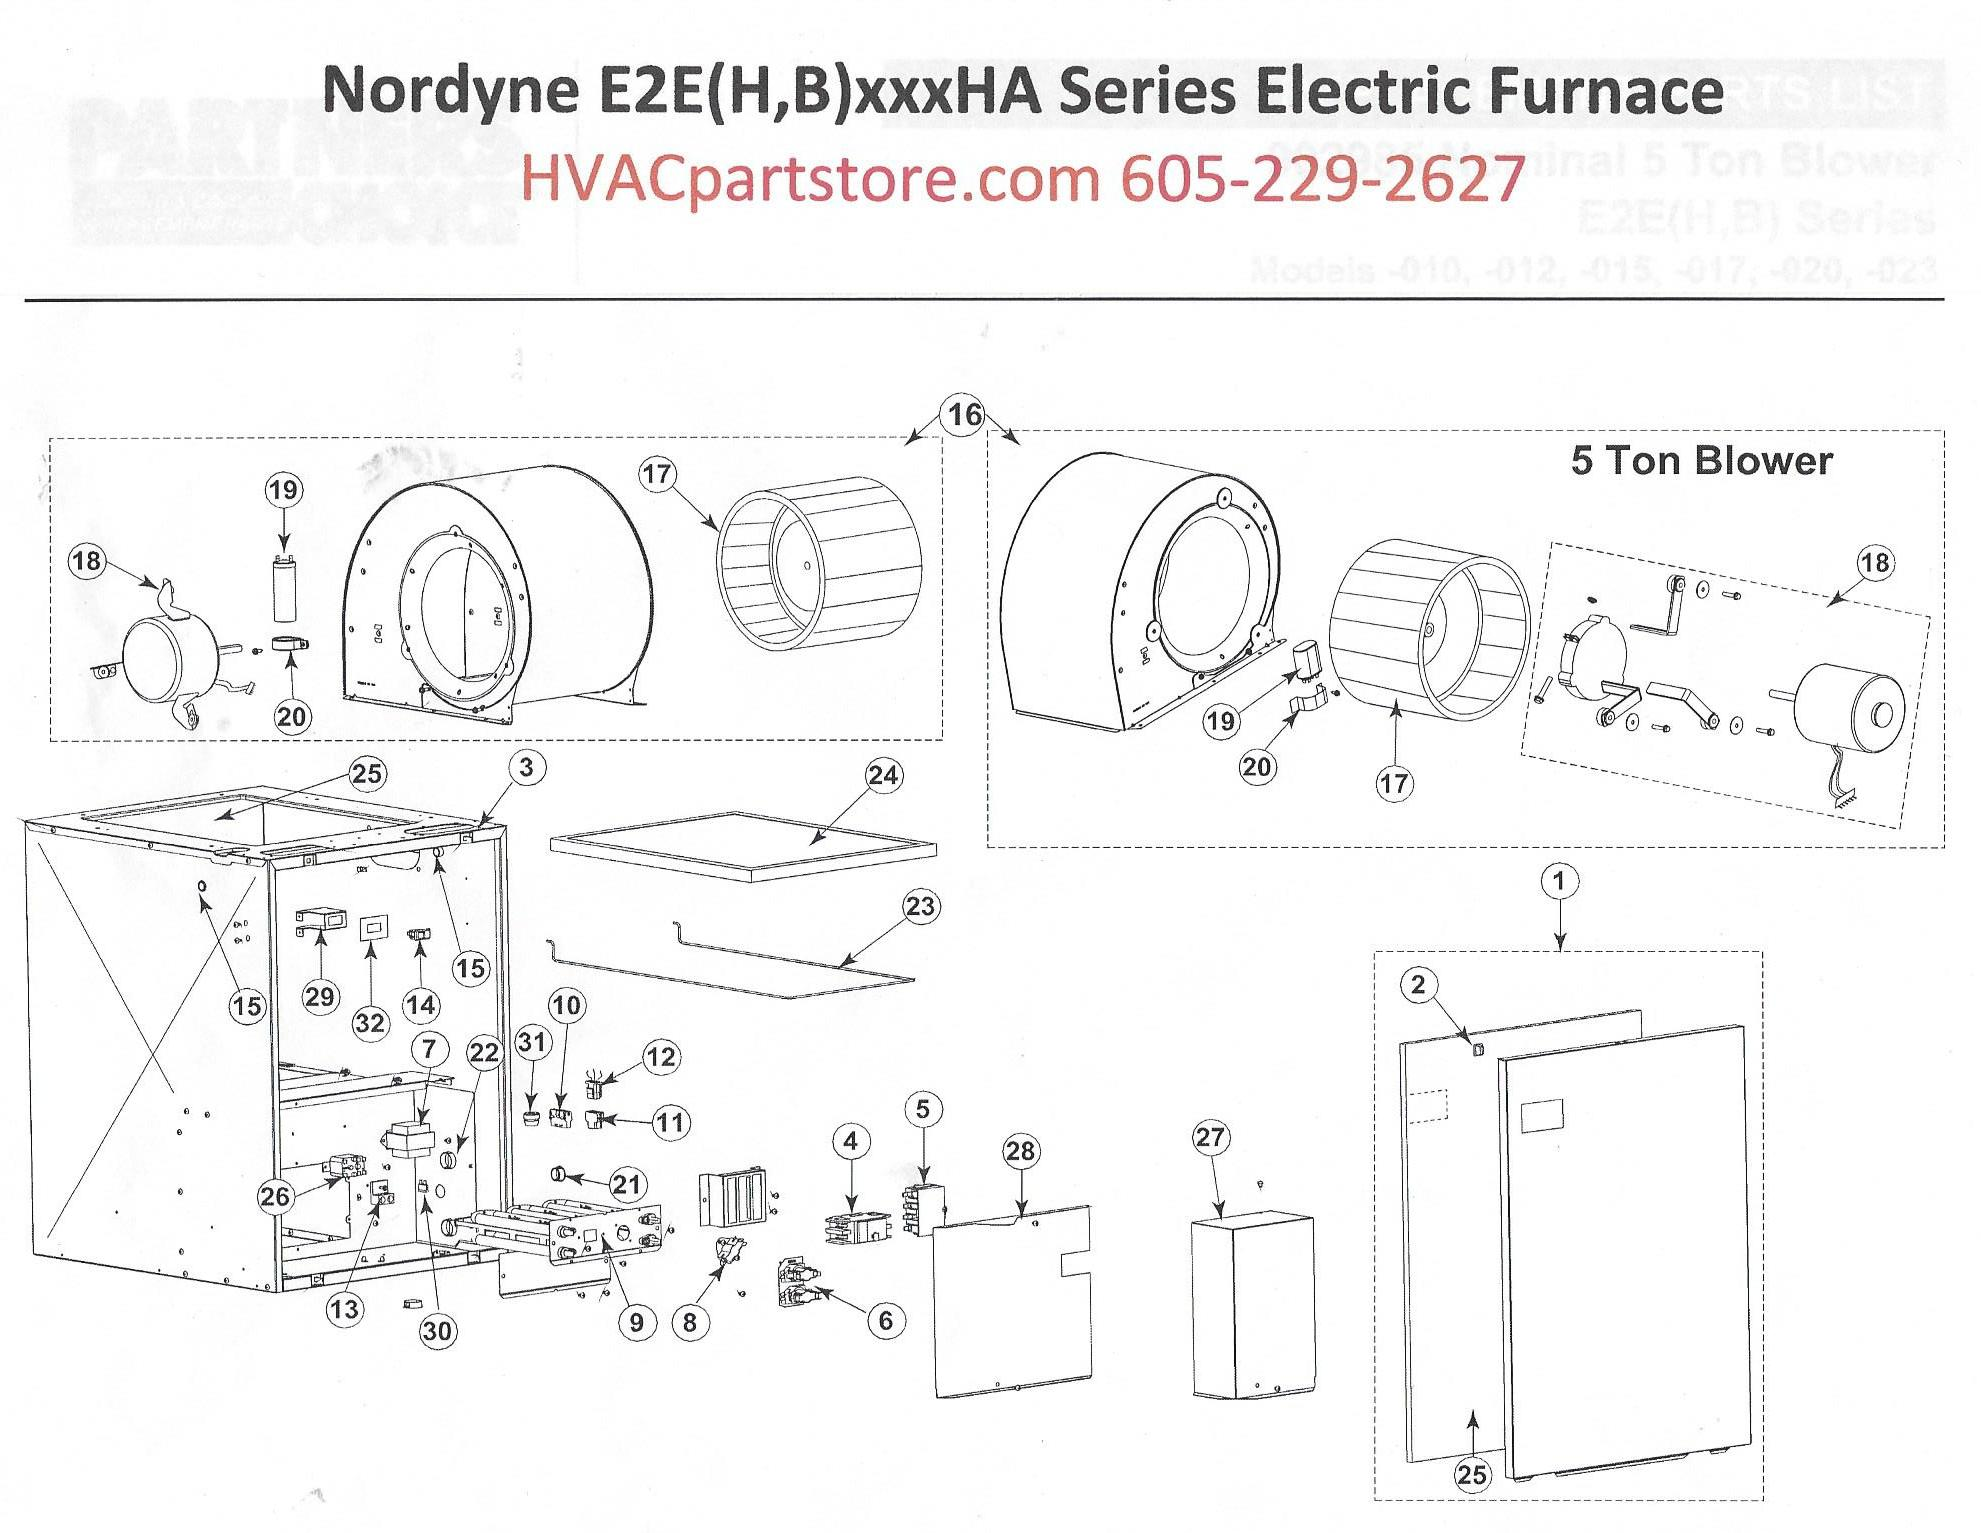 e2eb015ha nordyne electric furnace parts hvacpartstore click here to view a parts listing for the e2eb015ha which includes partial wiring diagrams that we currently have available